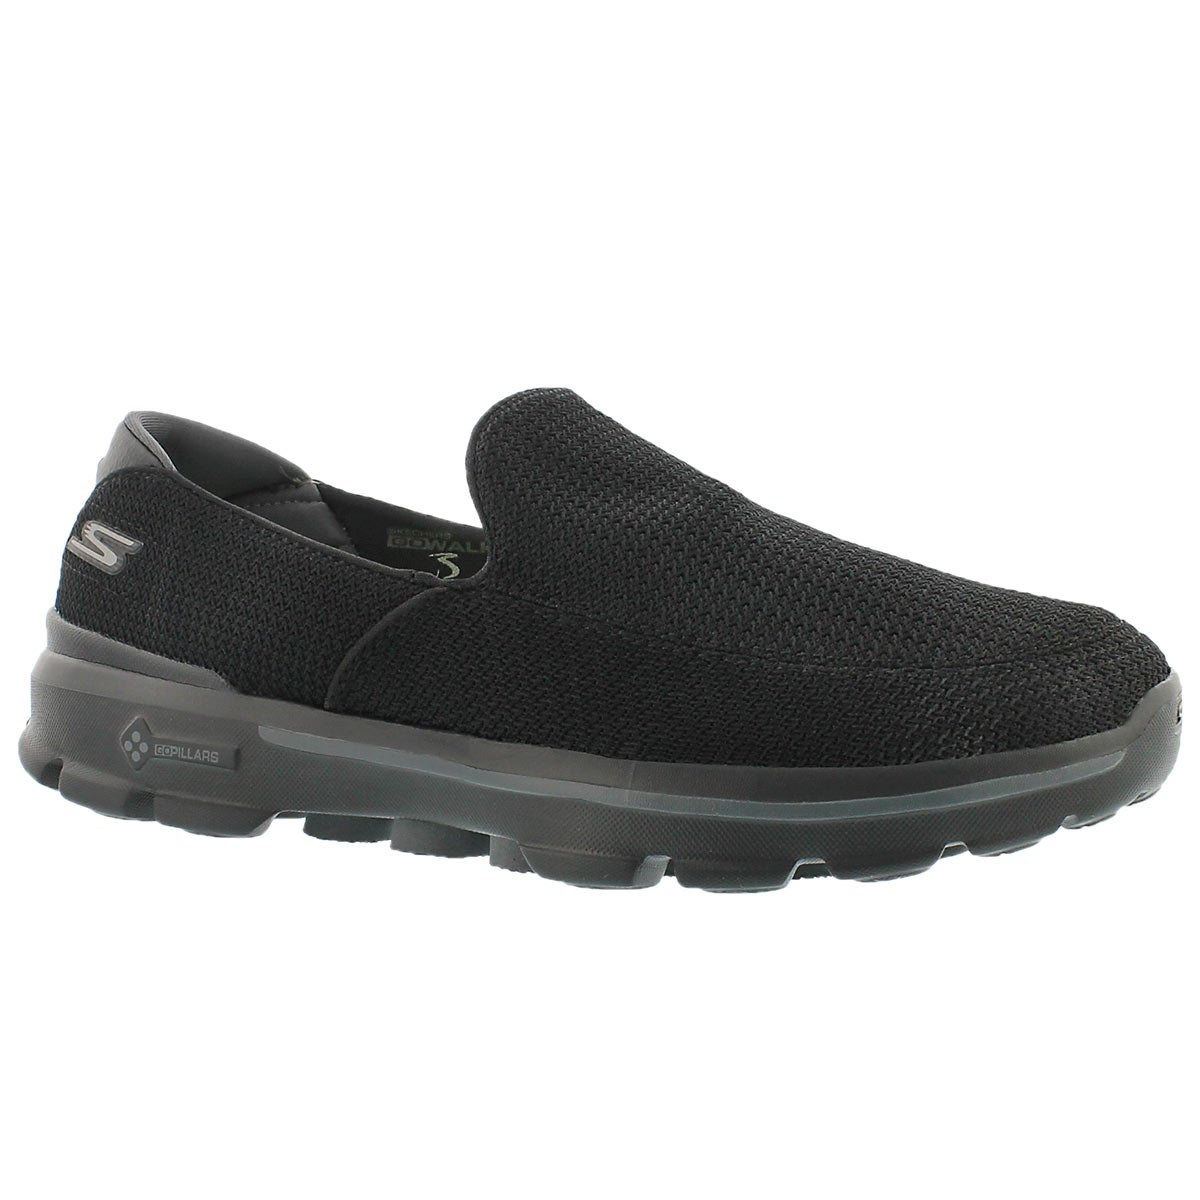 Men's GOwalk 3 black slip on shoes